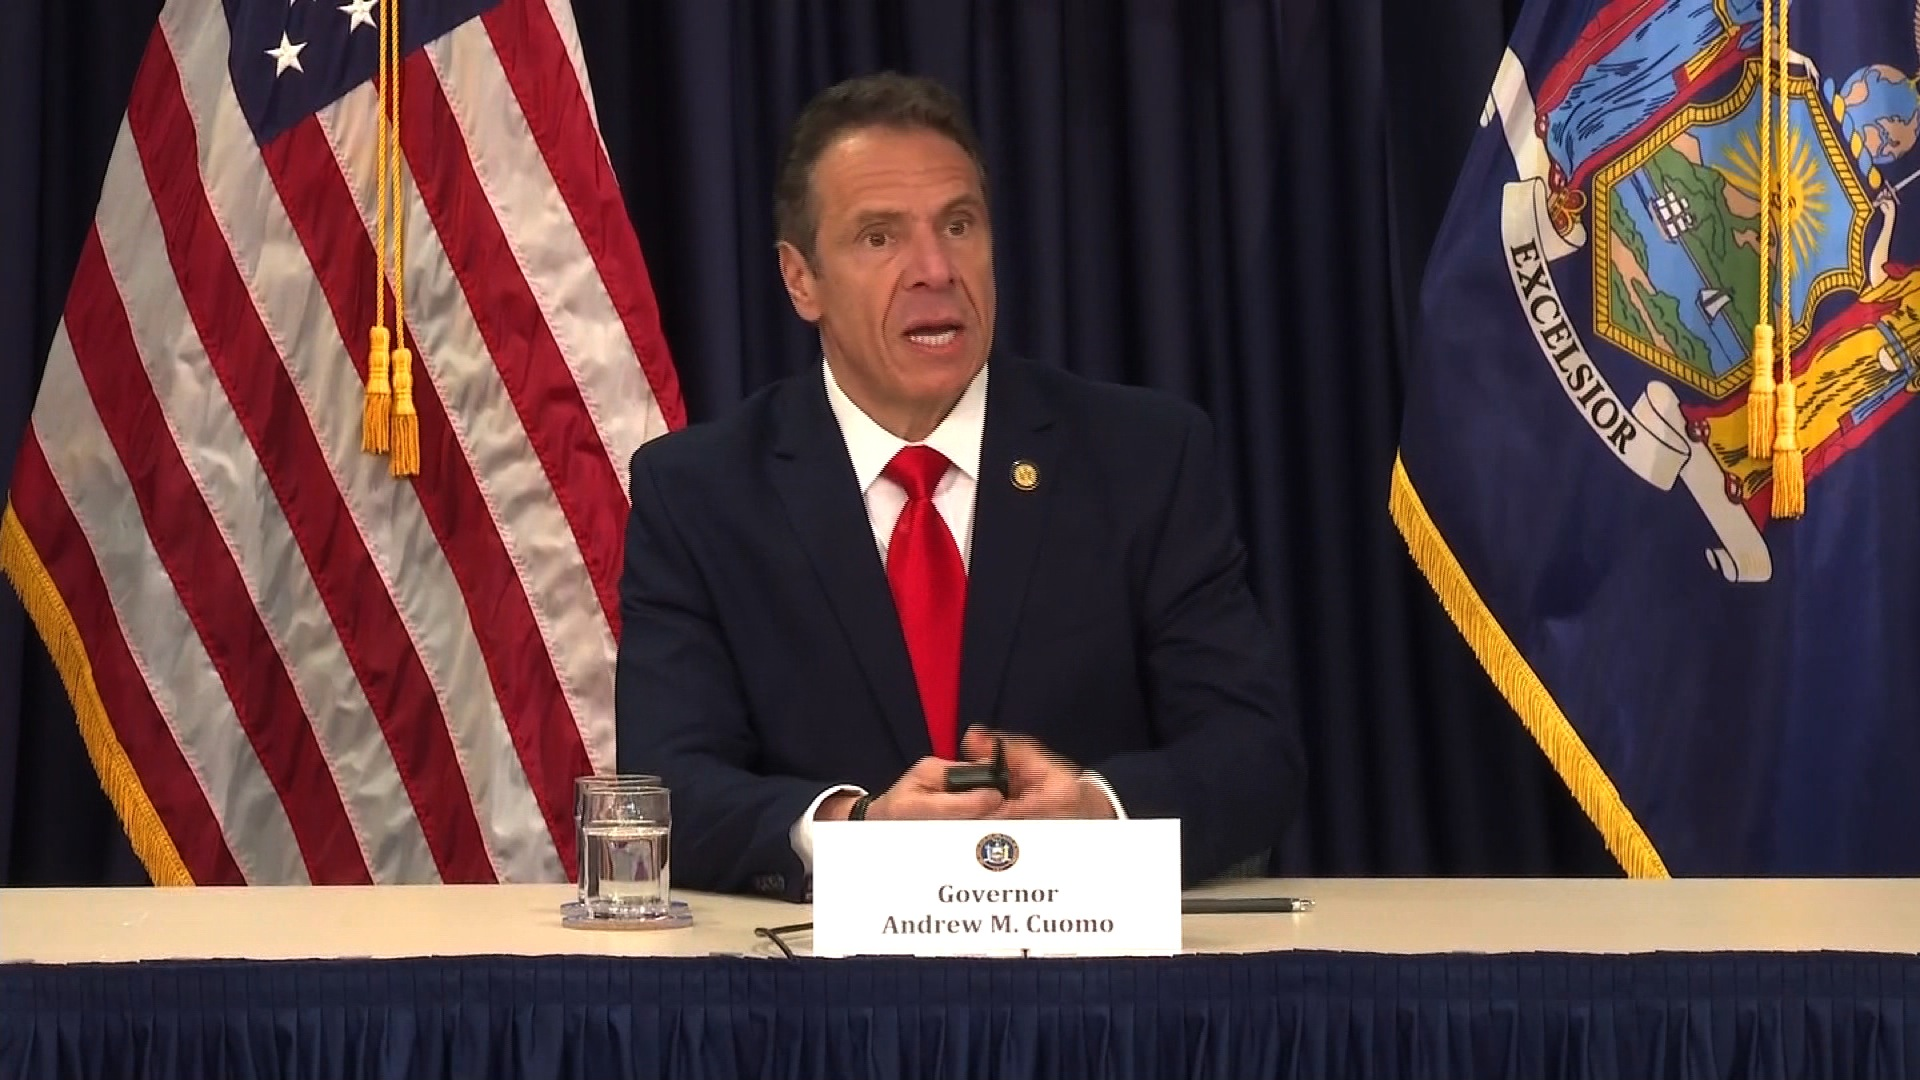 New York Gov. Andrew Cuomo speaks during a media briefing on May 5, in Albany, New York.